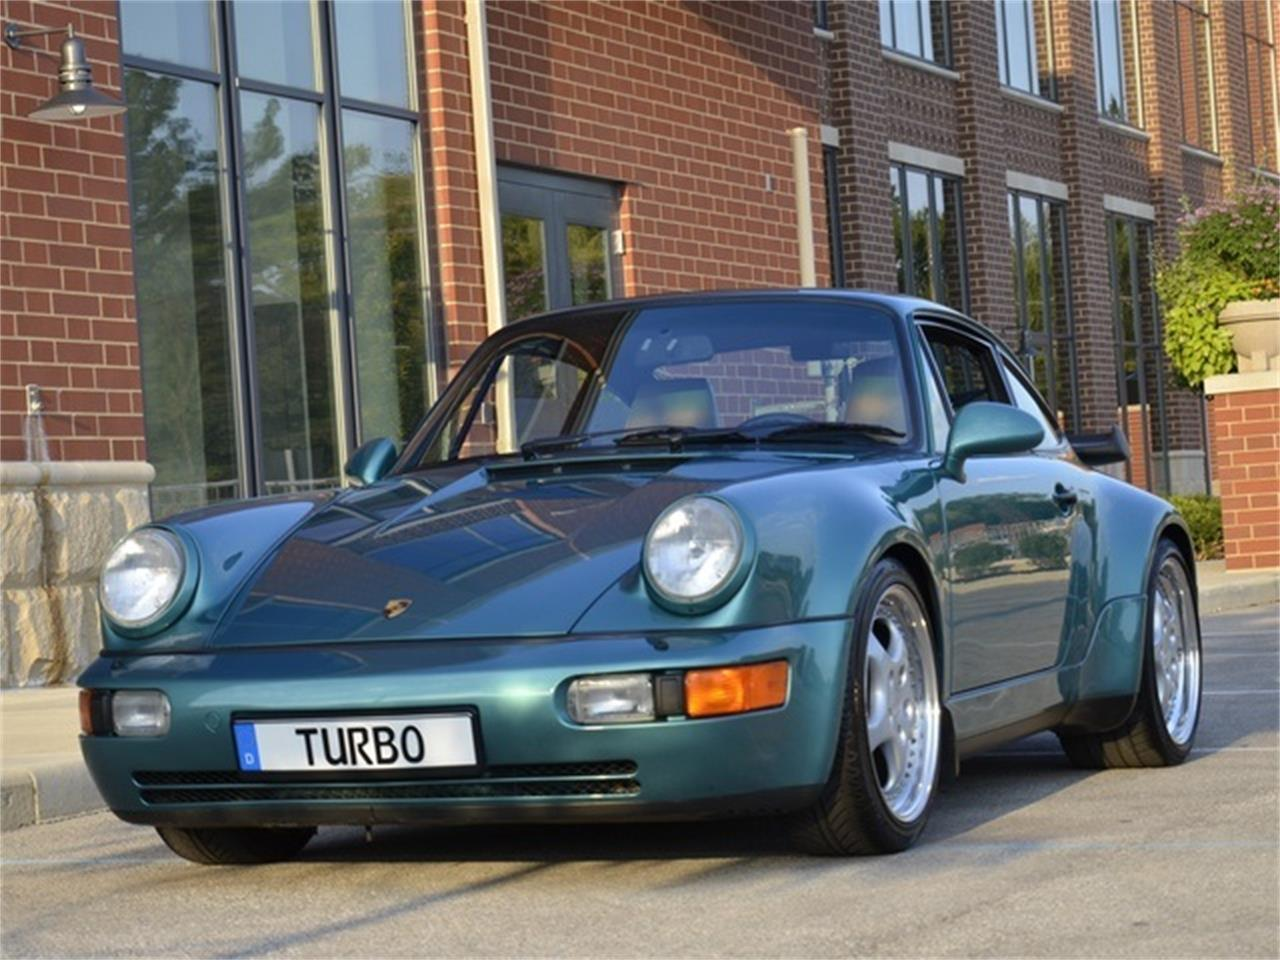 Large Picture of 1994 911 Turbo located in Carmel Indiana Auction Vehicle - FX1T